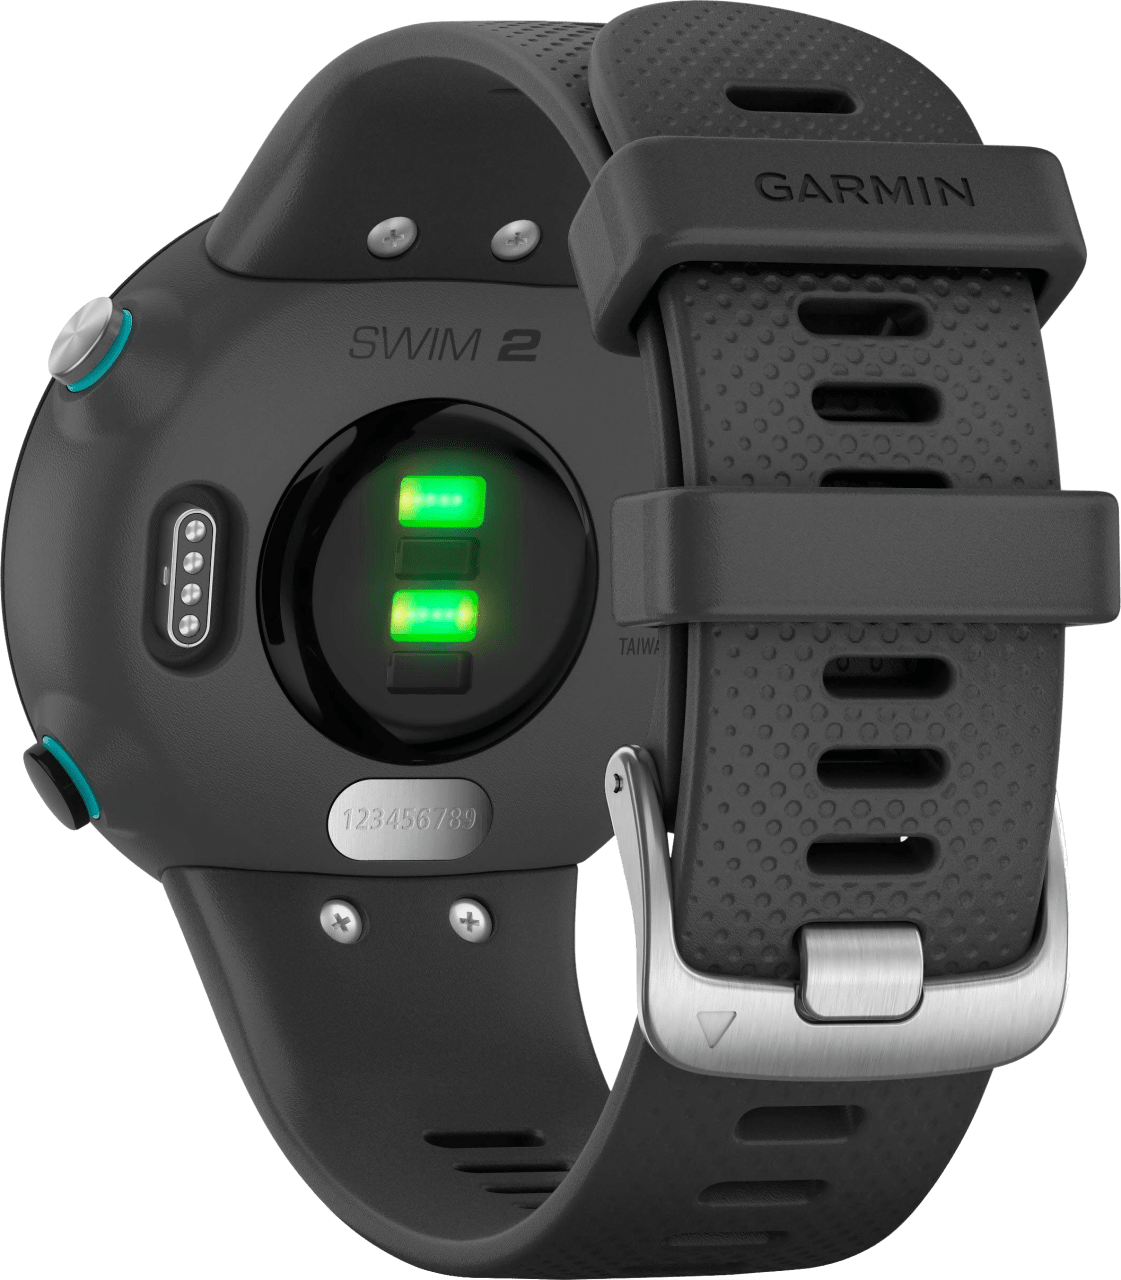 Schiefer grau Garmin Swim ™ 2.3